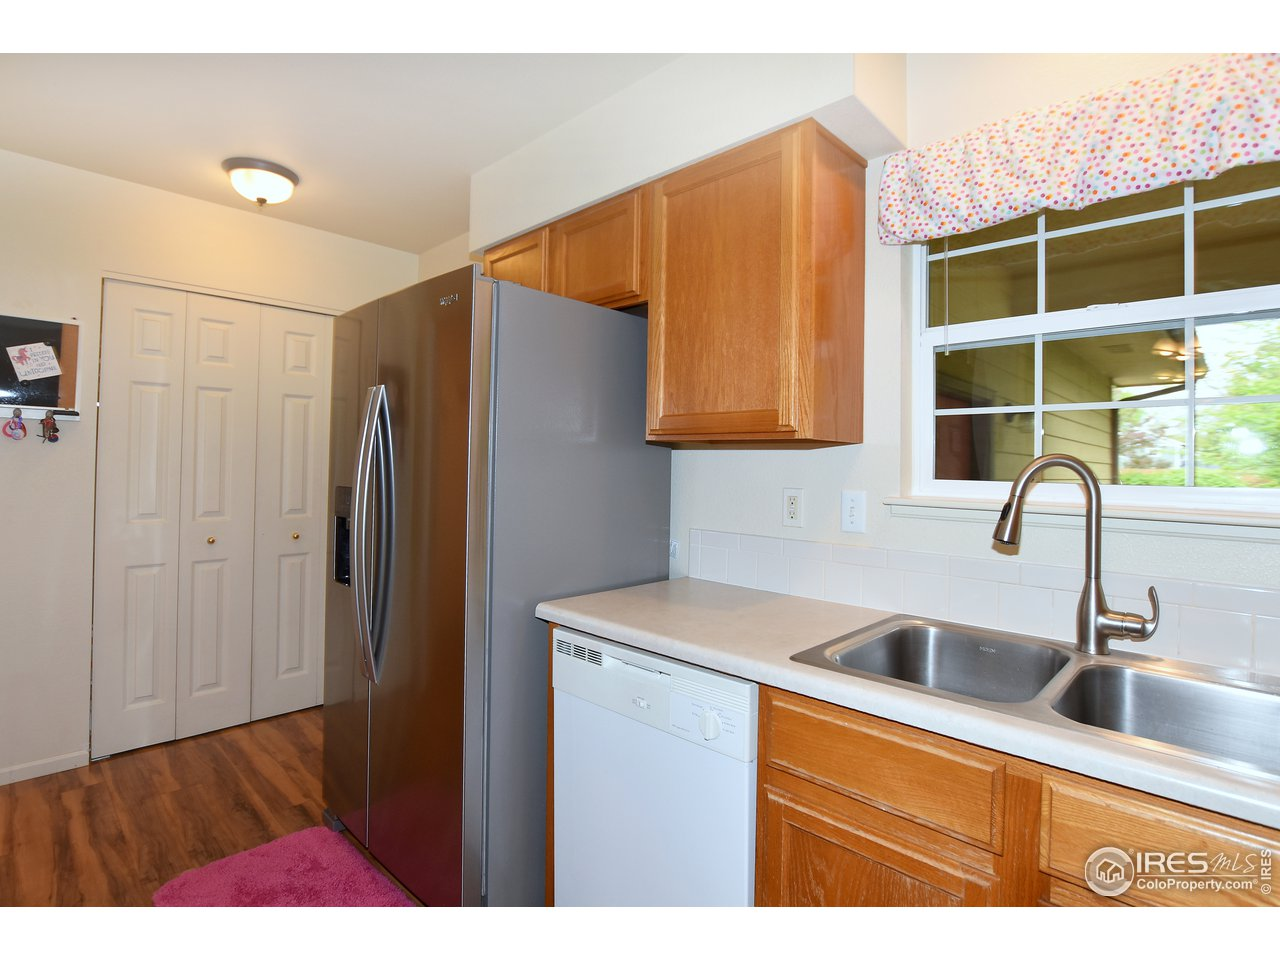 Pantry area by kitchen.